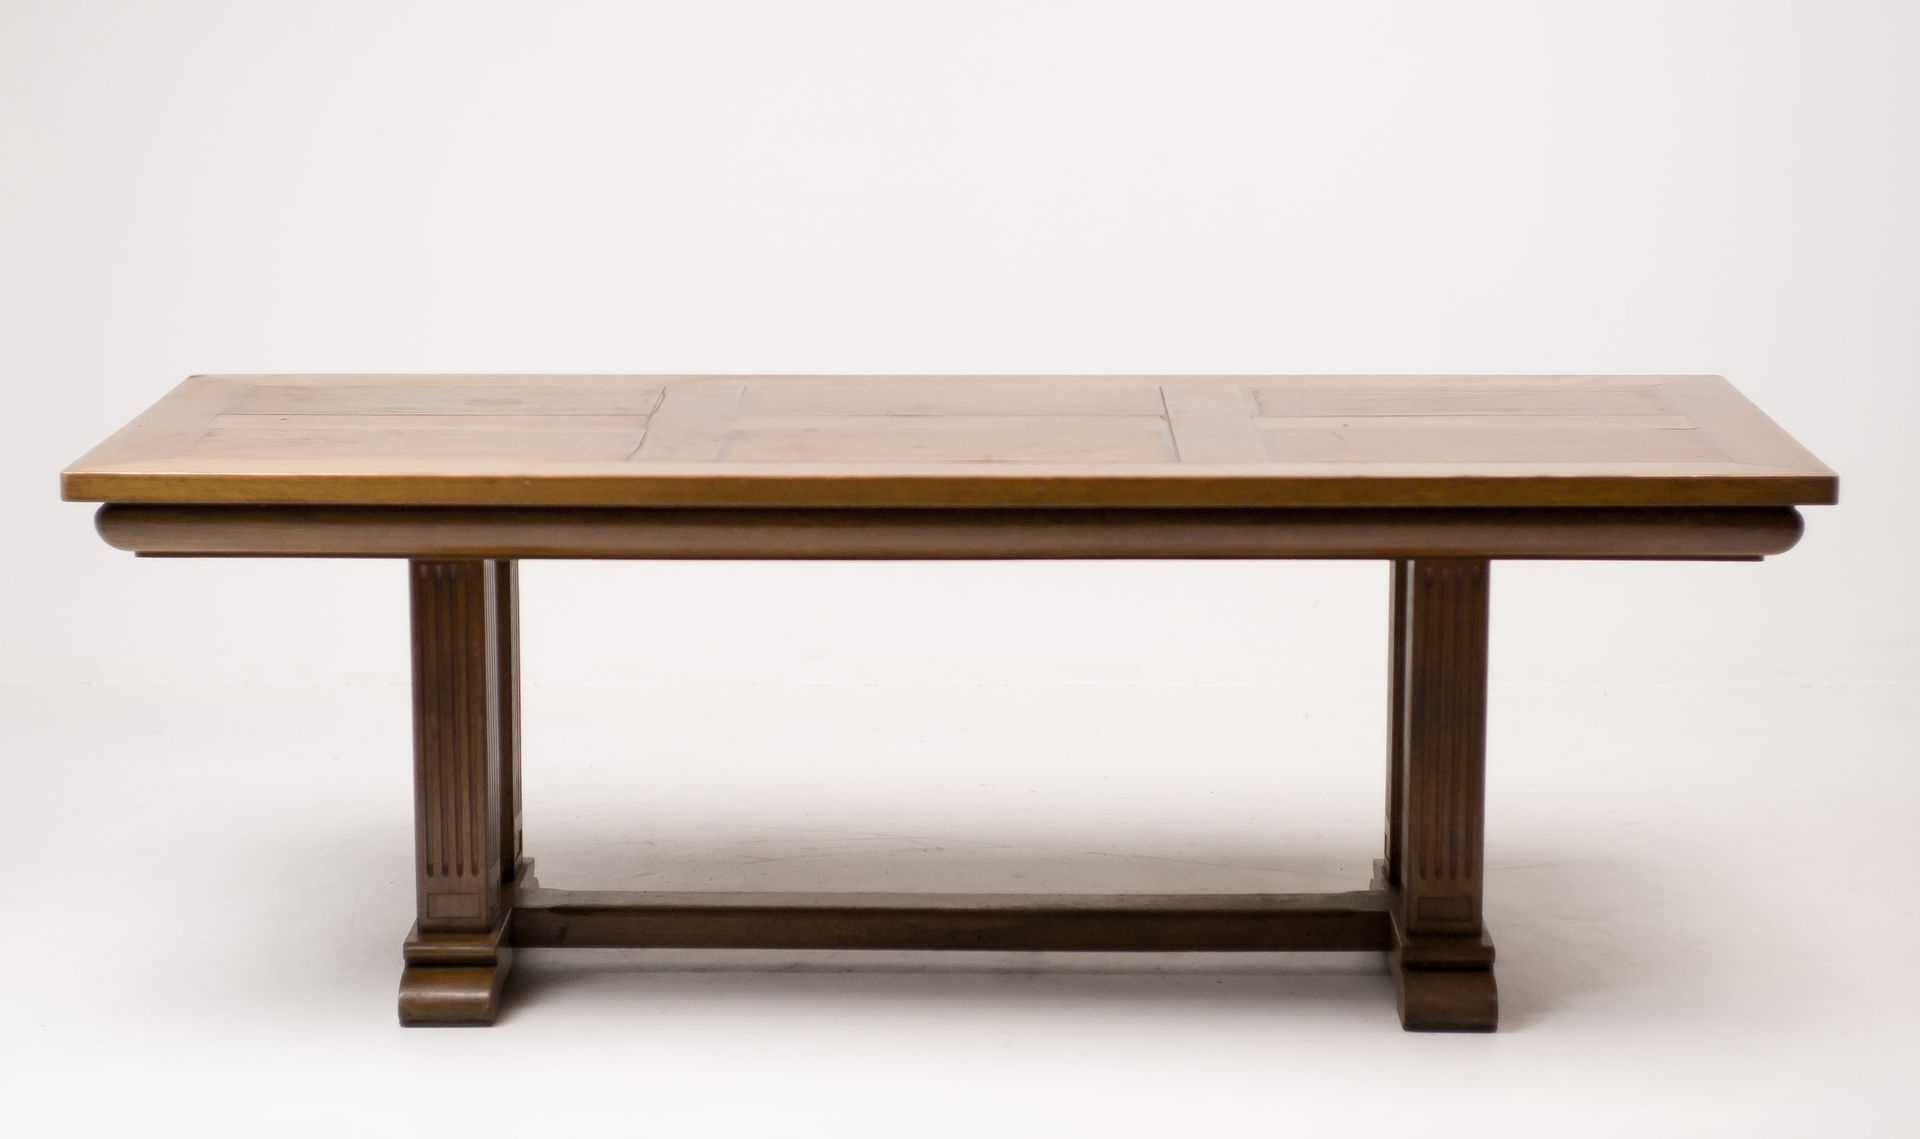 Fashionable Oak Dining Tables For Architectural Oak Dining Table, 1920S For Sale At Pamono (View 9 of 25)